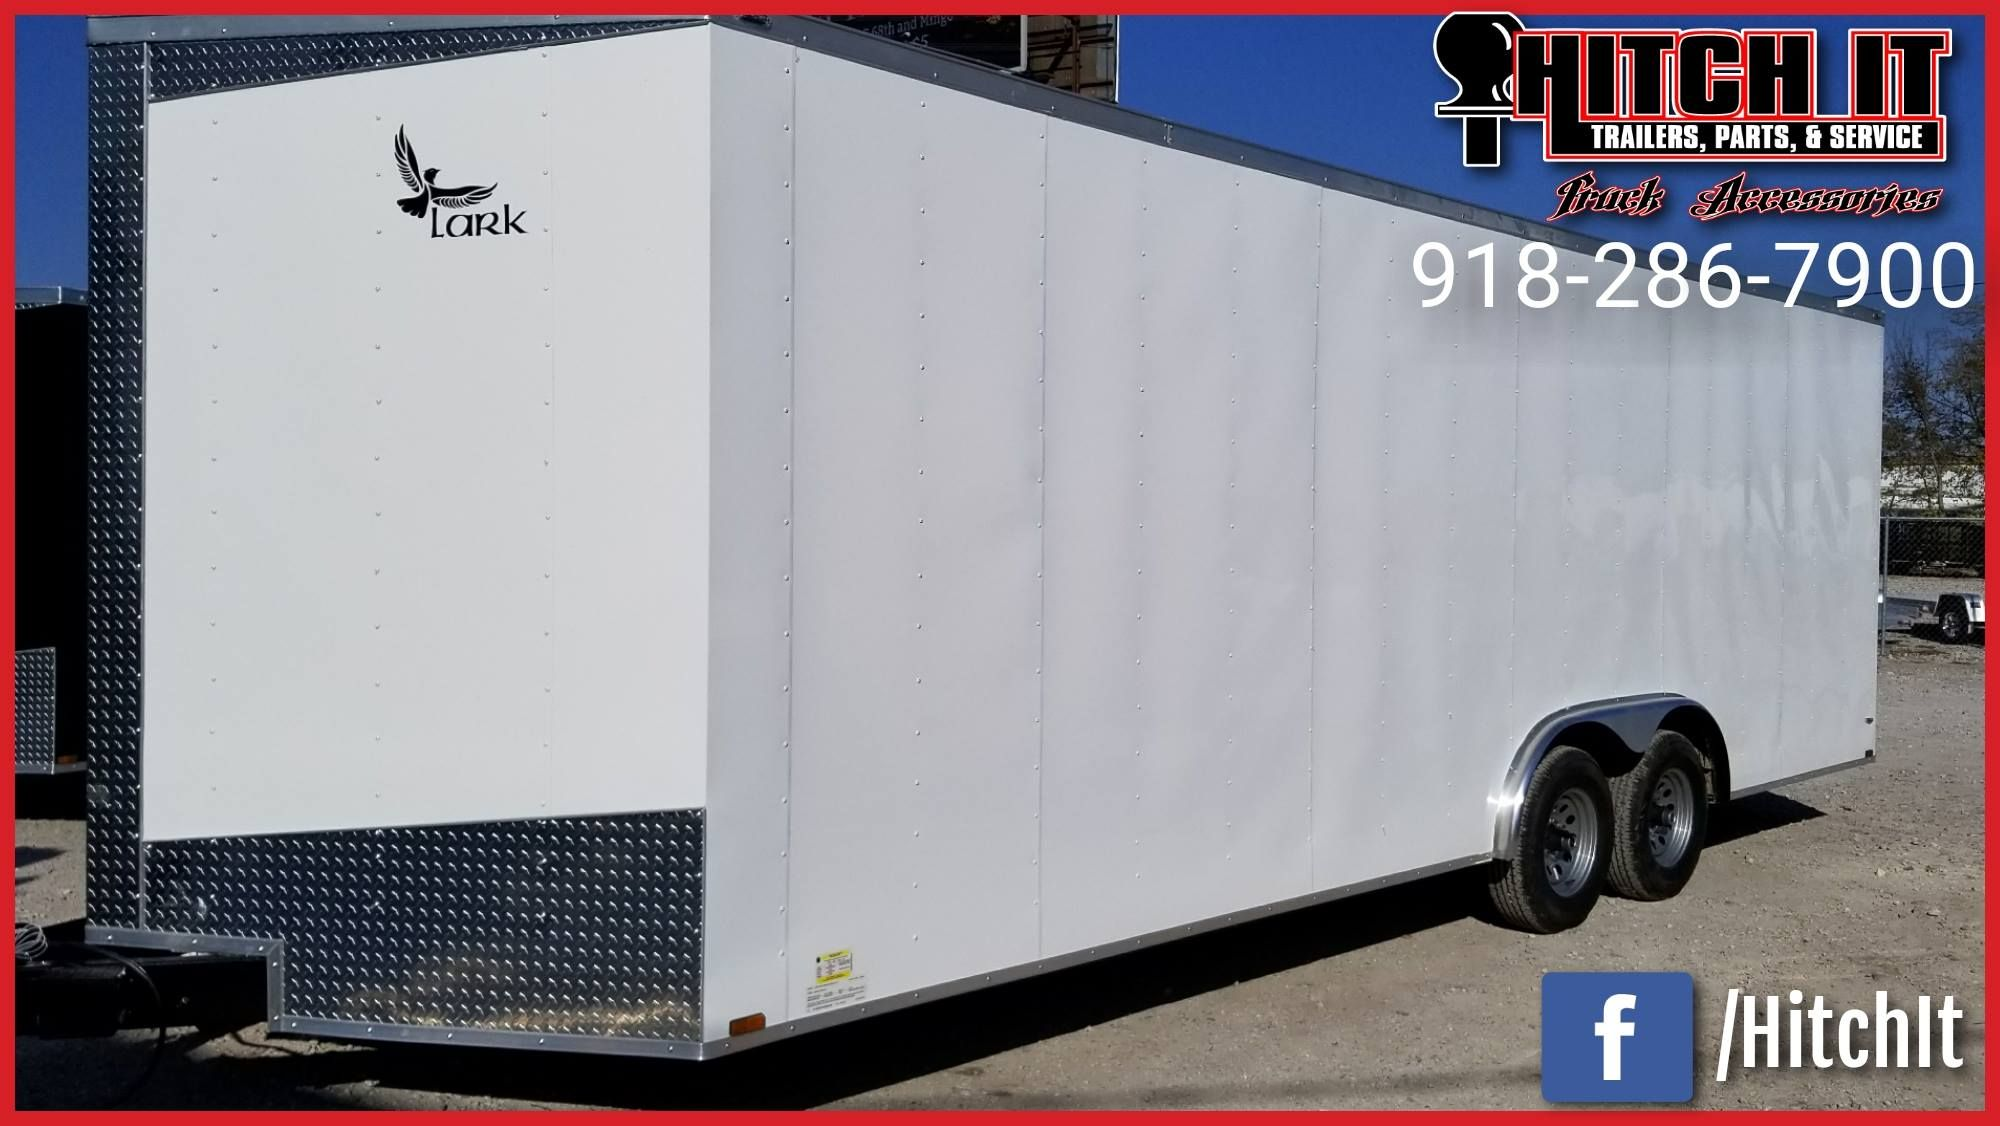 Hitch It Trailers, Parts, Service & Truck Accessories 5866 S. 107th E. Avenue Tulsa, Oklahoma 74146 918-286-7900  #HitchIt #TrailerSales #TrailerService #TrailerParts #TruckAccessories #YourTrailerShop #Tulsa #Oklahoma